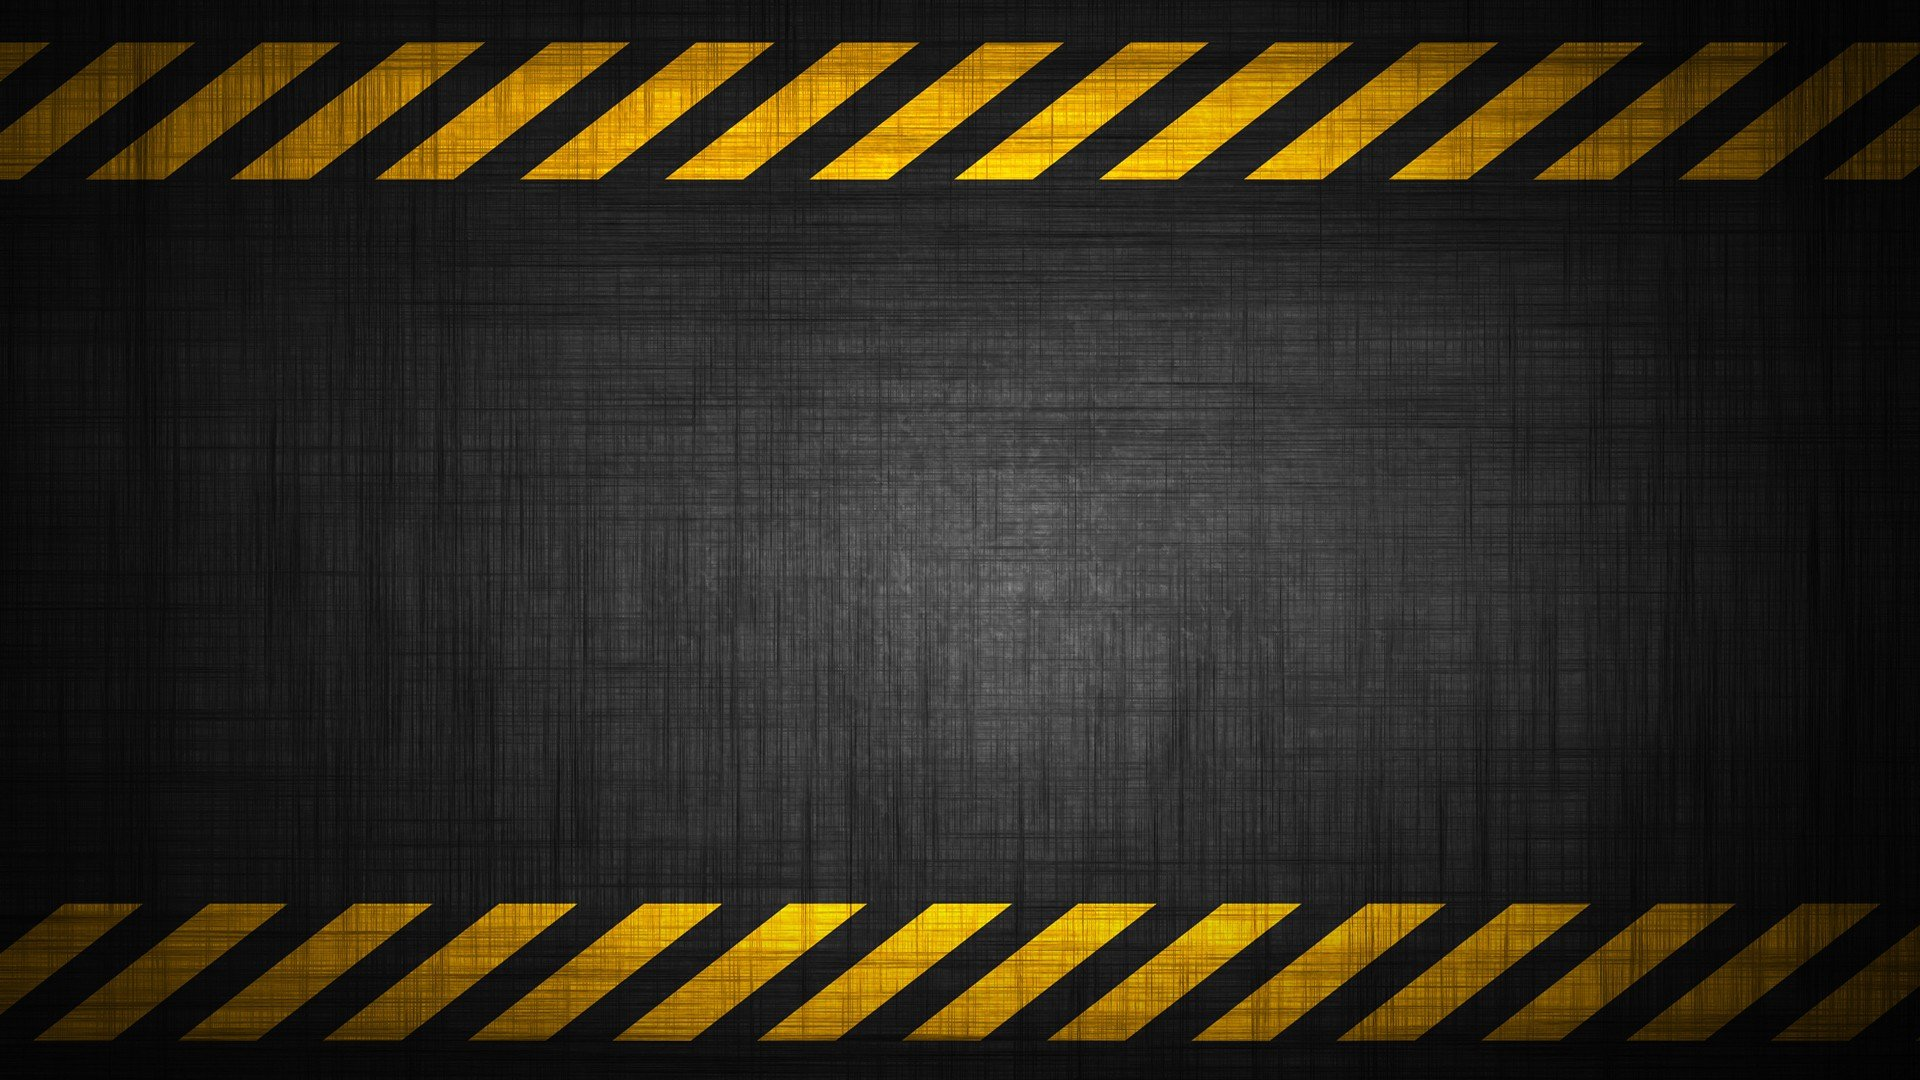 Construction Png Hd - Under Construction PNG HD Free Transparent Under Construction HD ...